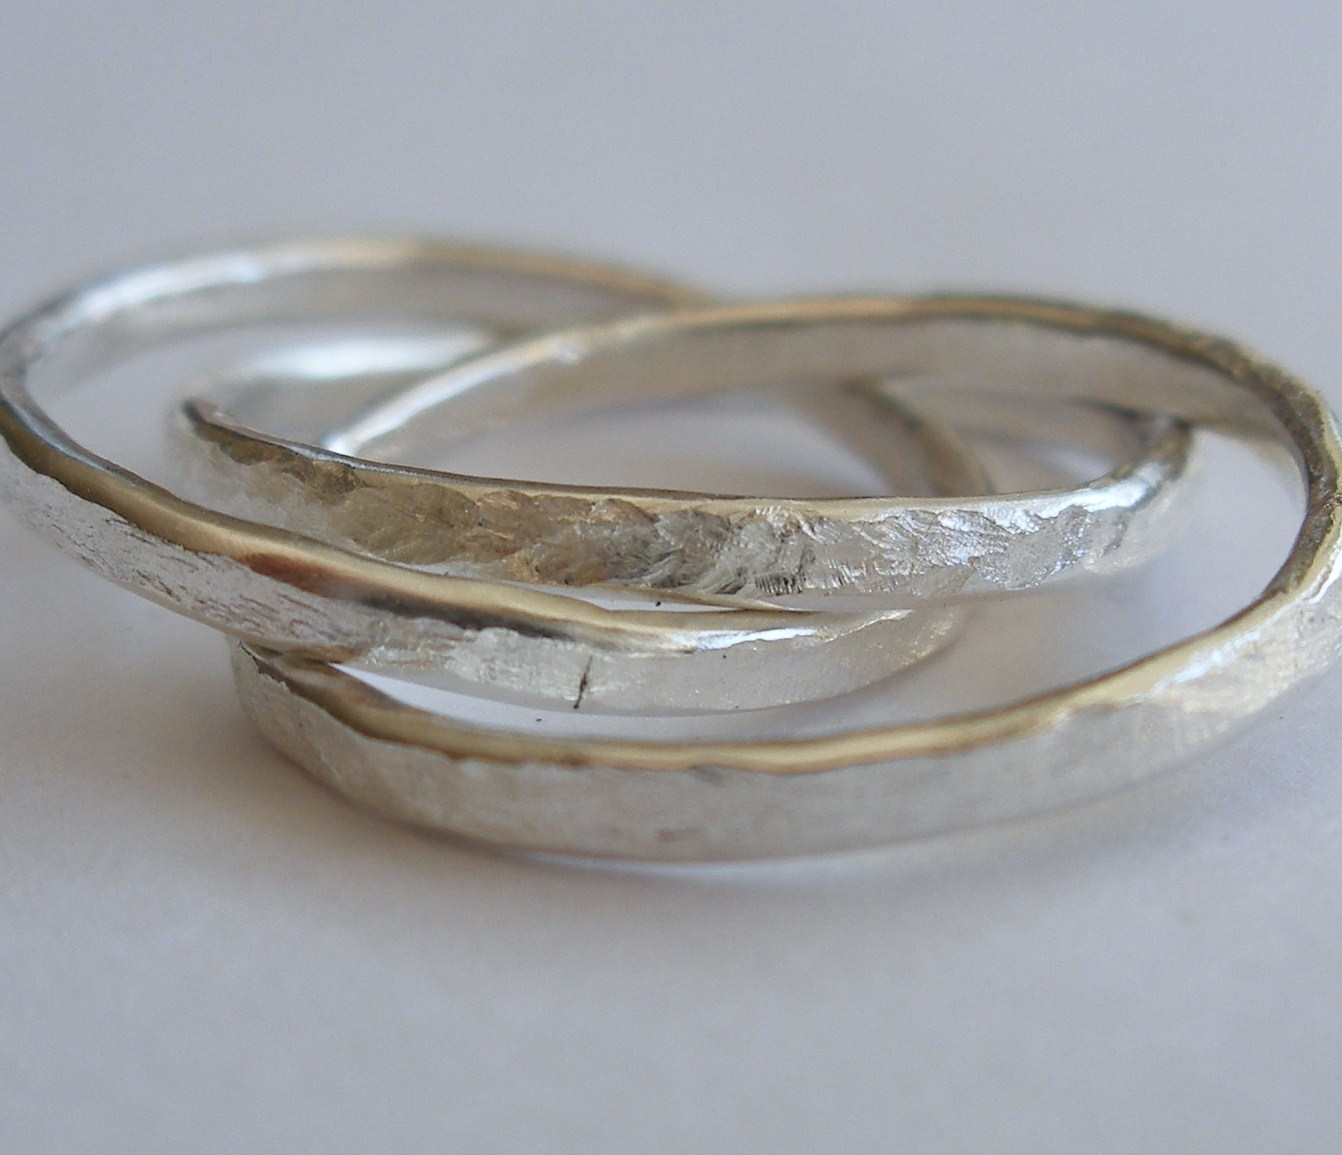 Interlocking Russian Wedding Rings